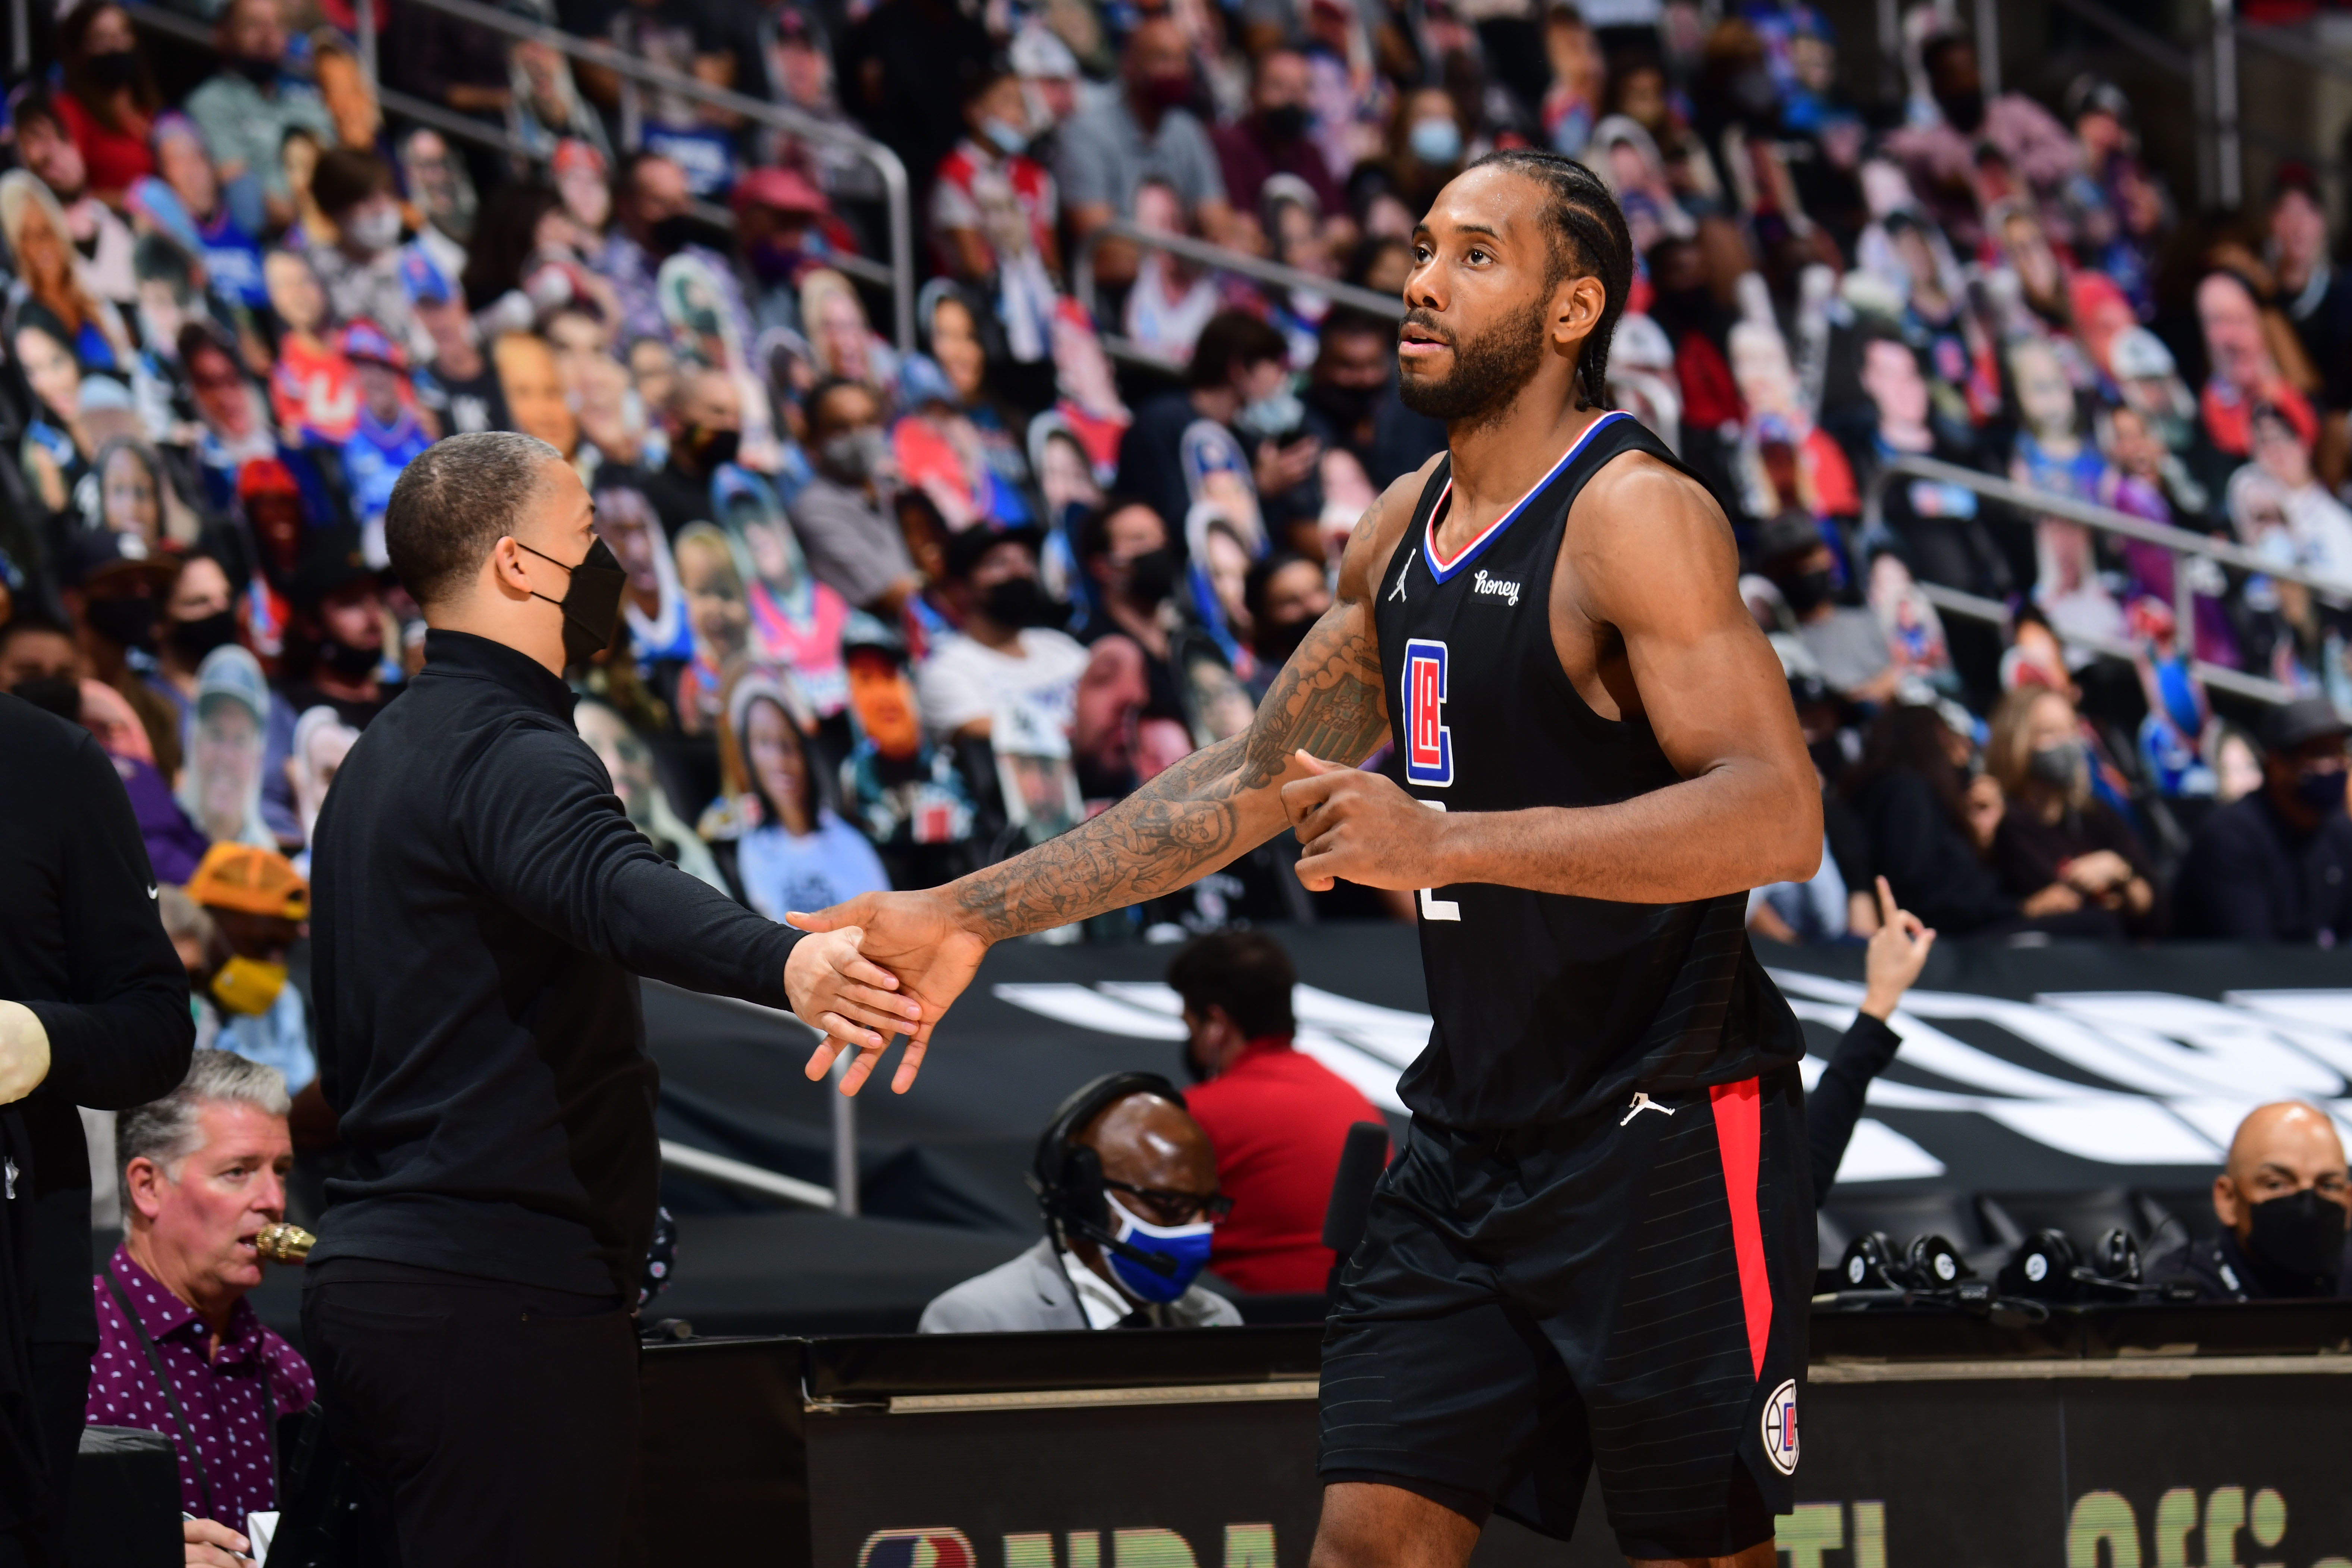 Head Coach Tyronn Lue of the Los Angeles Clippers hi-fives Kawhi Leonard #2 during Round 2, Game 4 of 2021 NBA Playoffs on June 14, 2021 at STAPLES Center in Los Angeles, California.